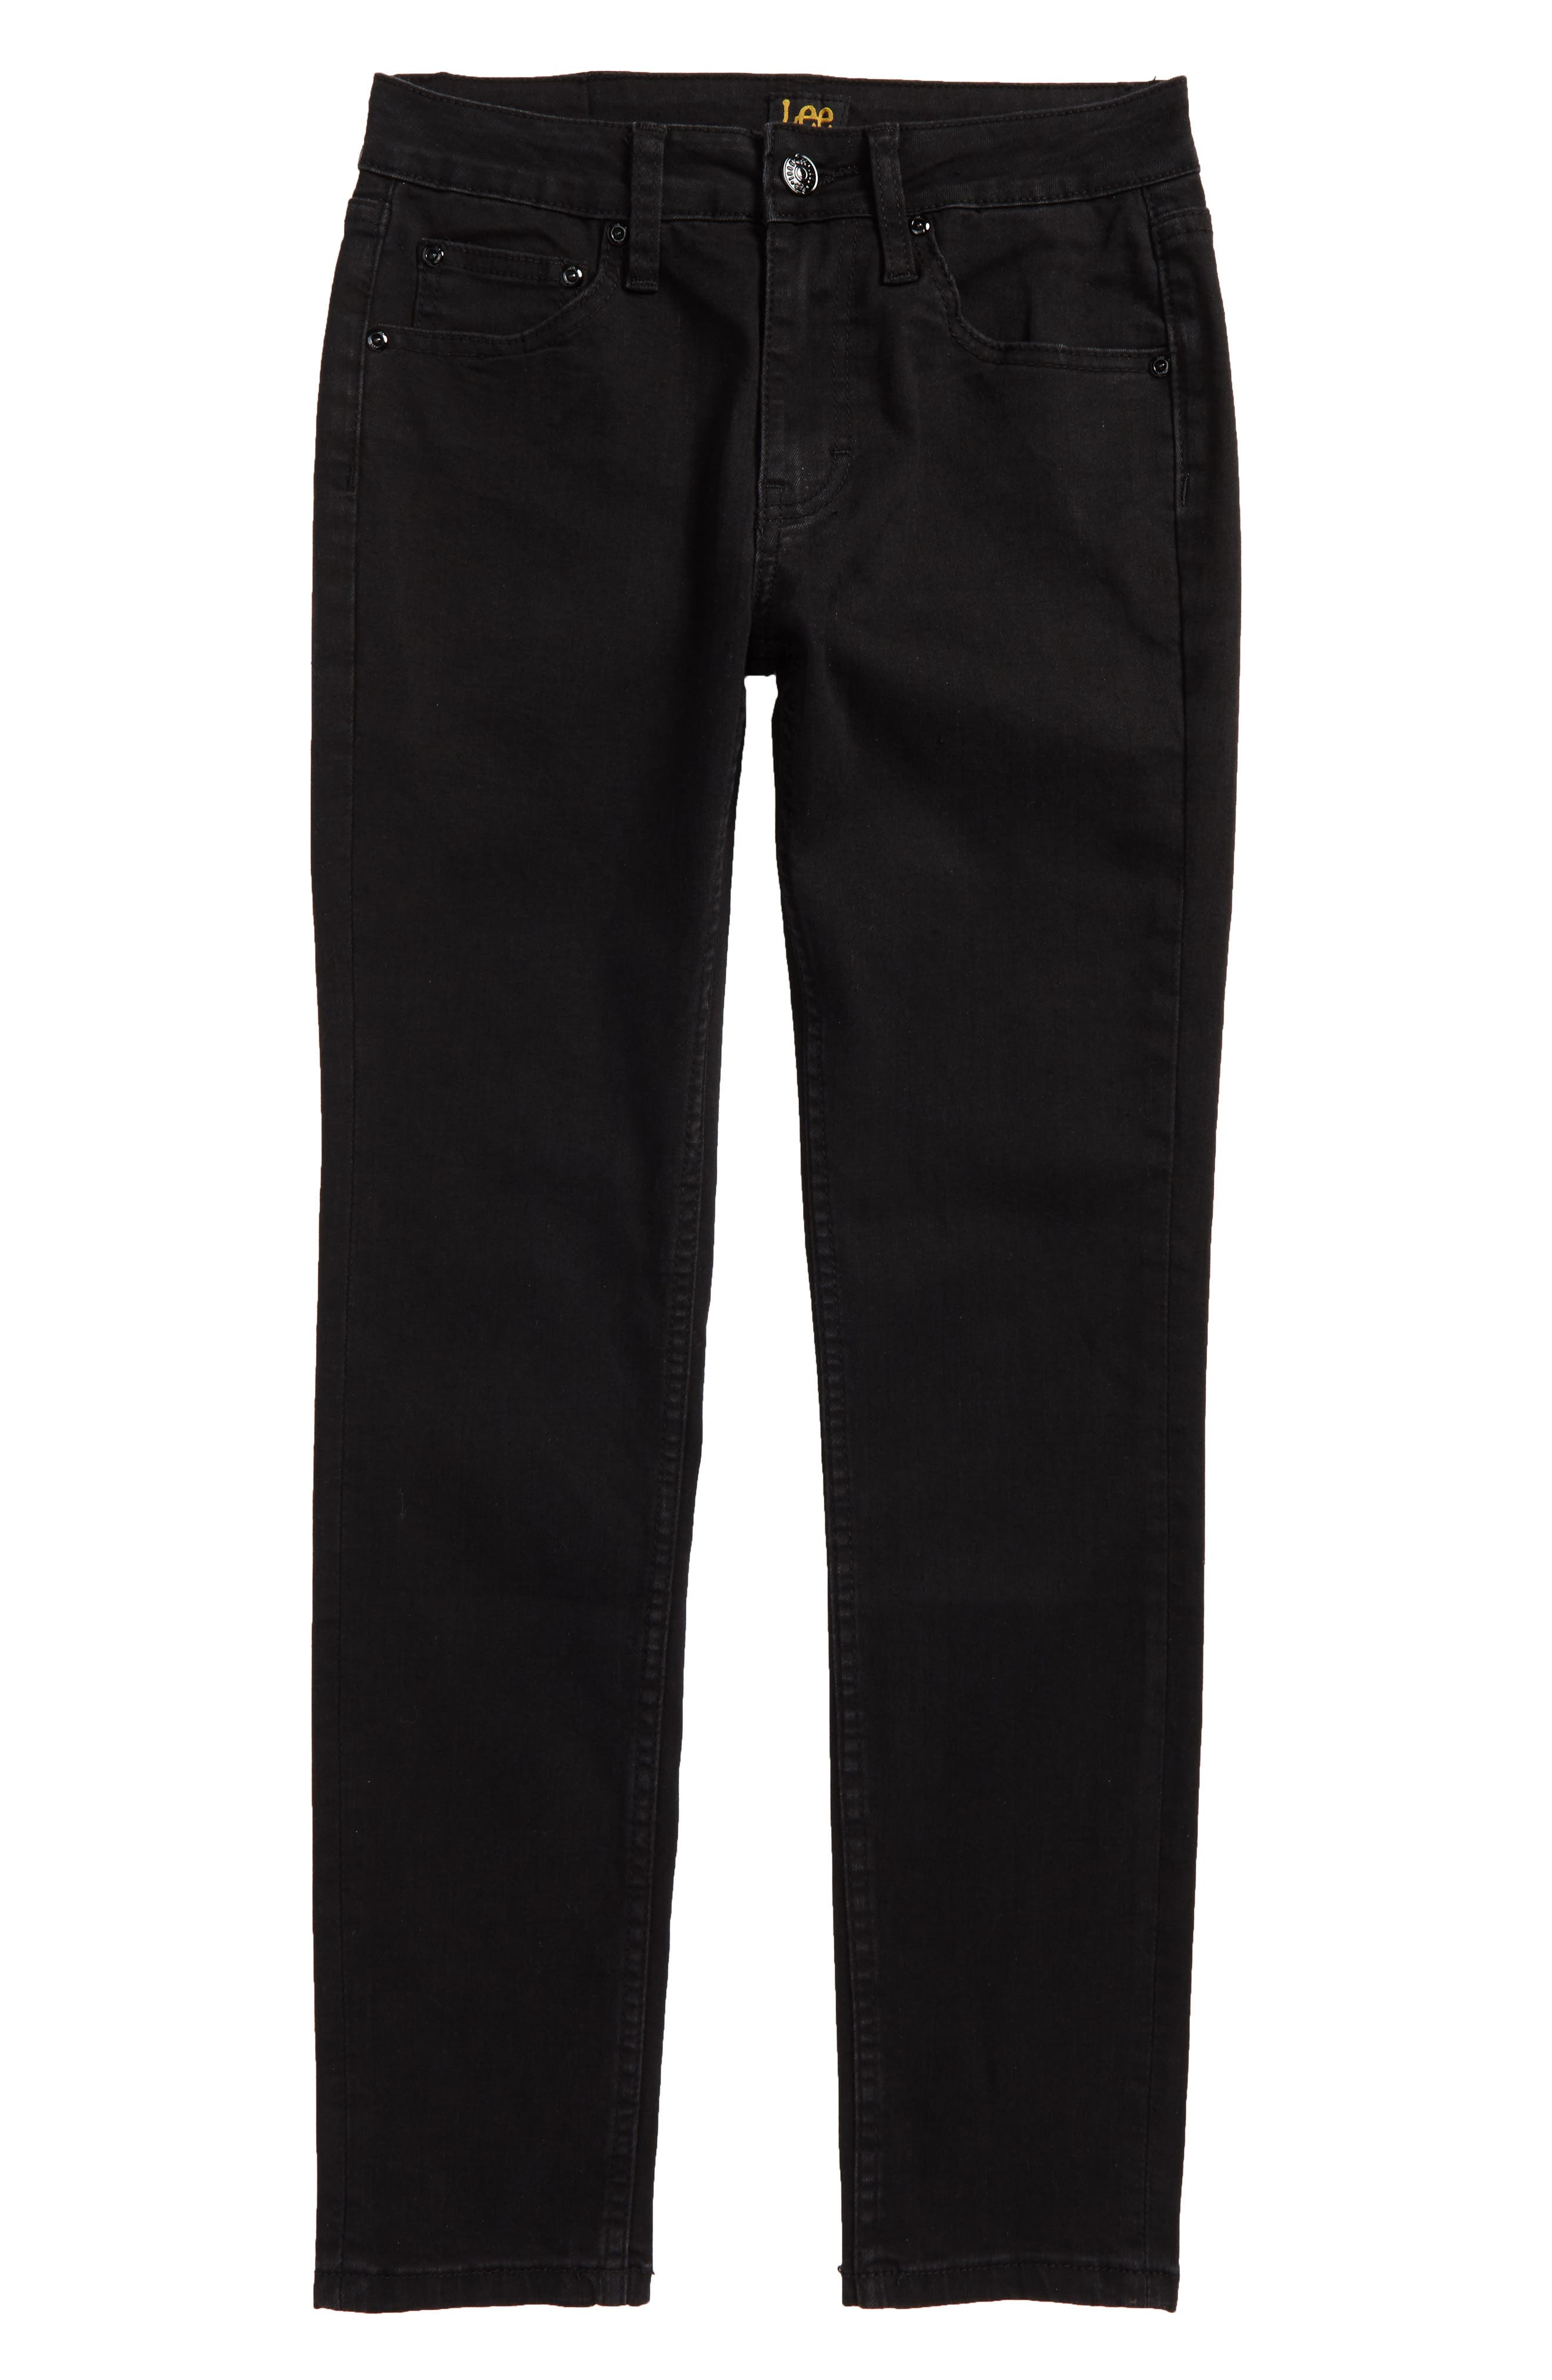 Stretch Skinny Jeans,                         Main,                         color,